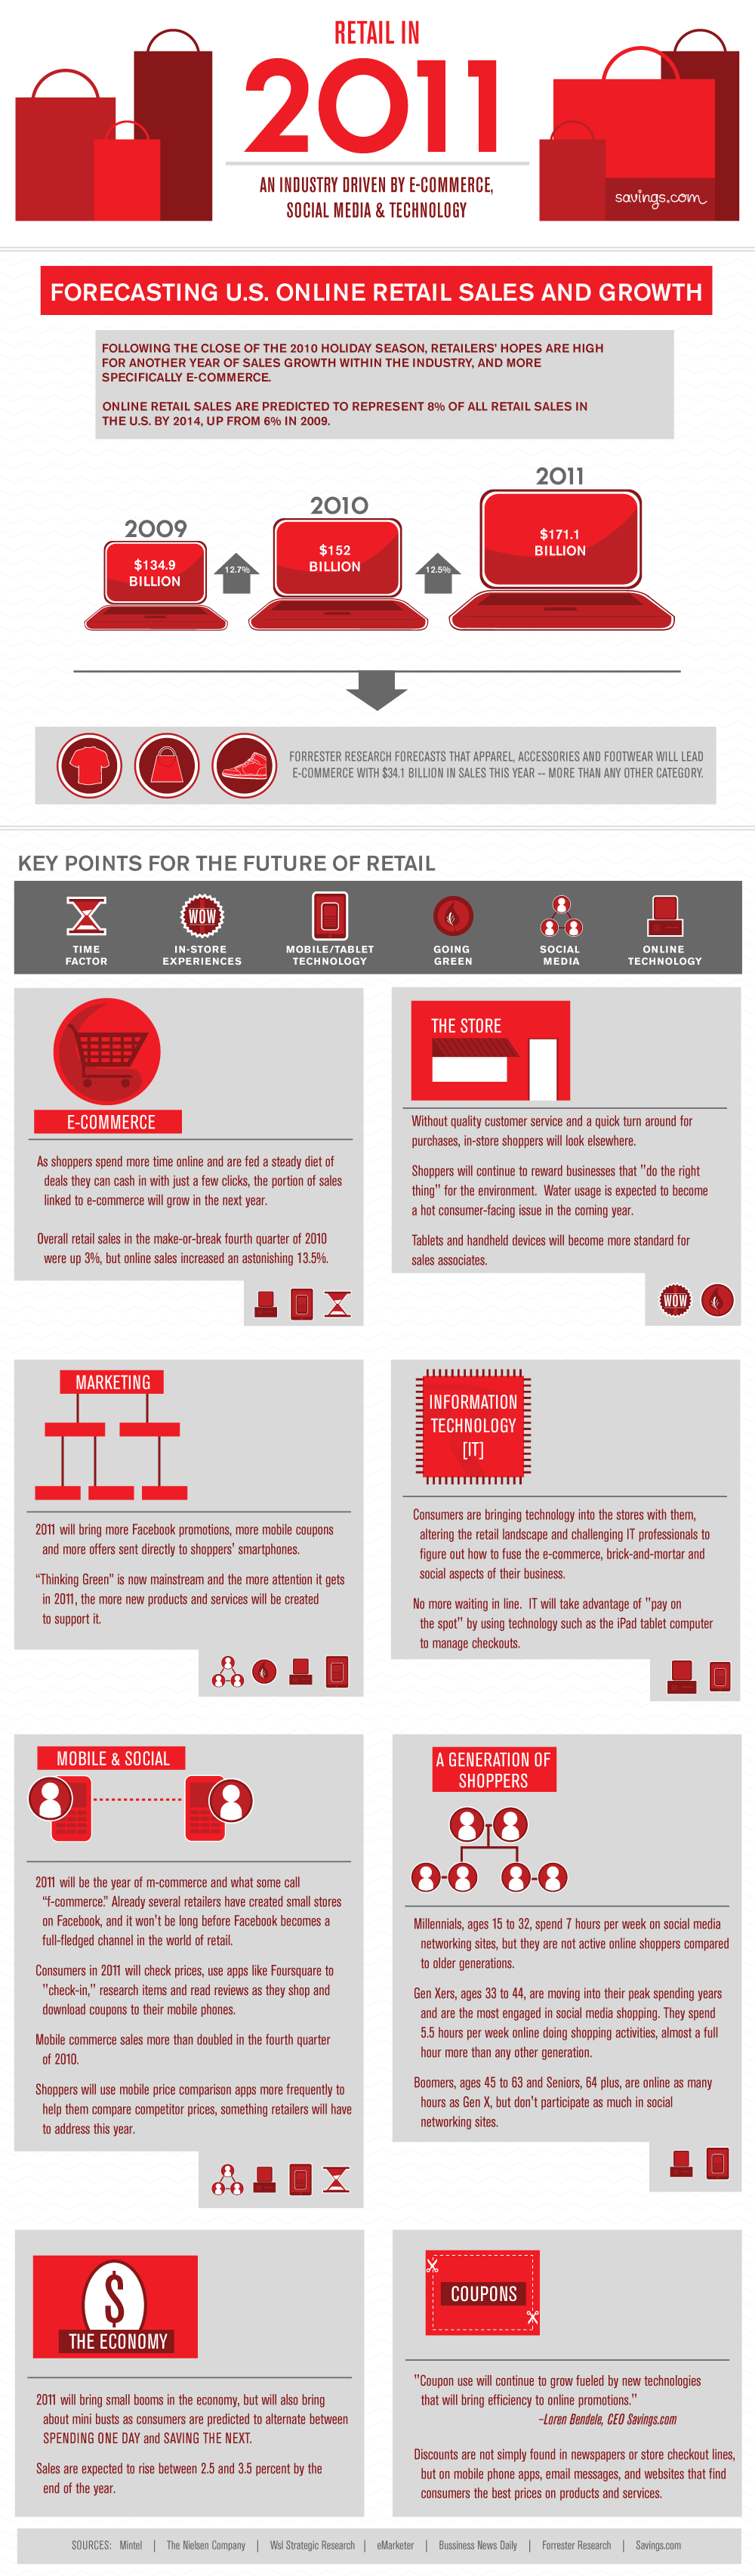 2011 Retail Predictions Infographic